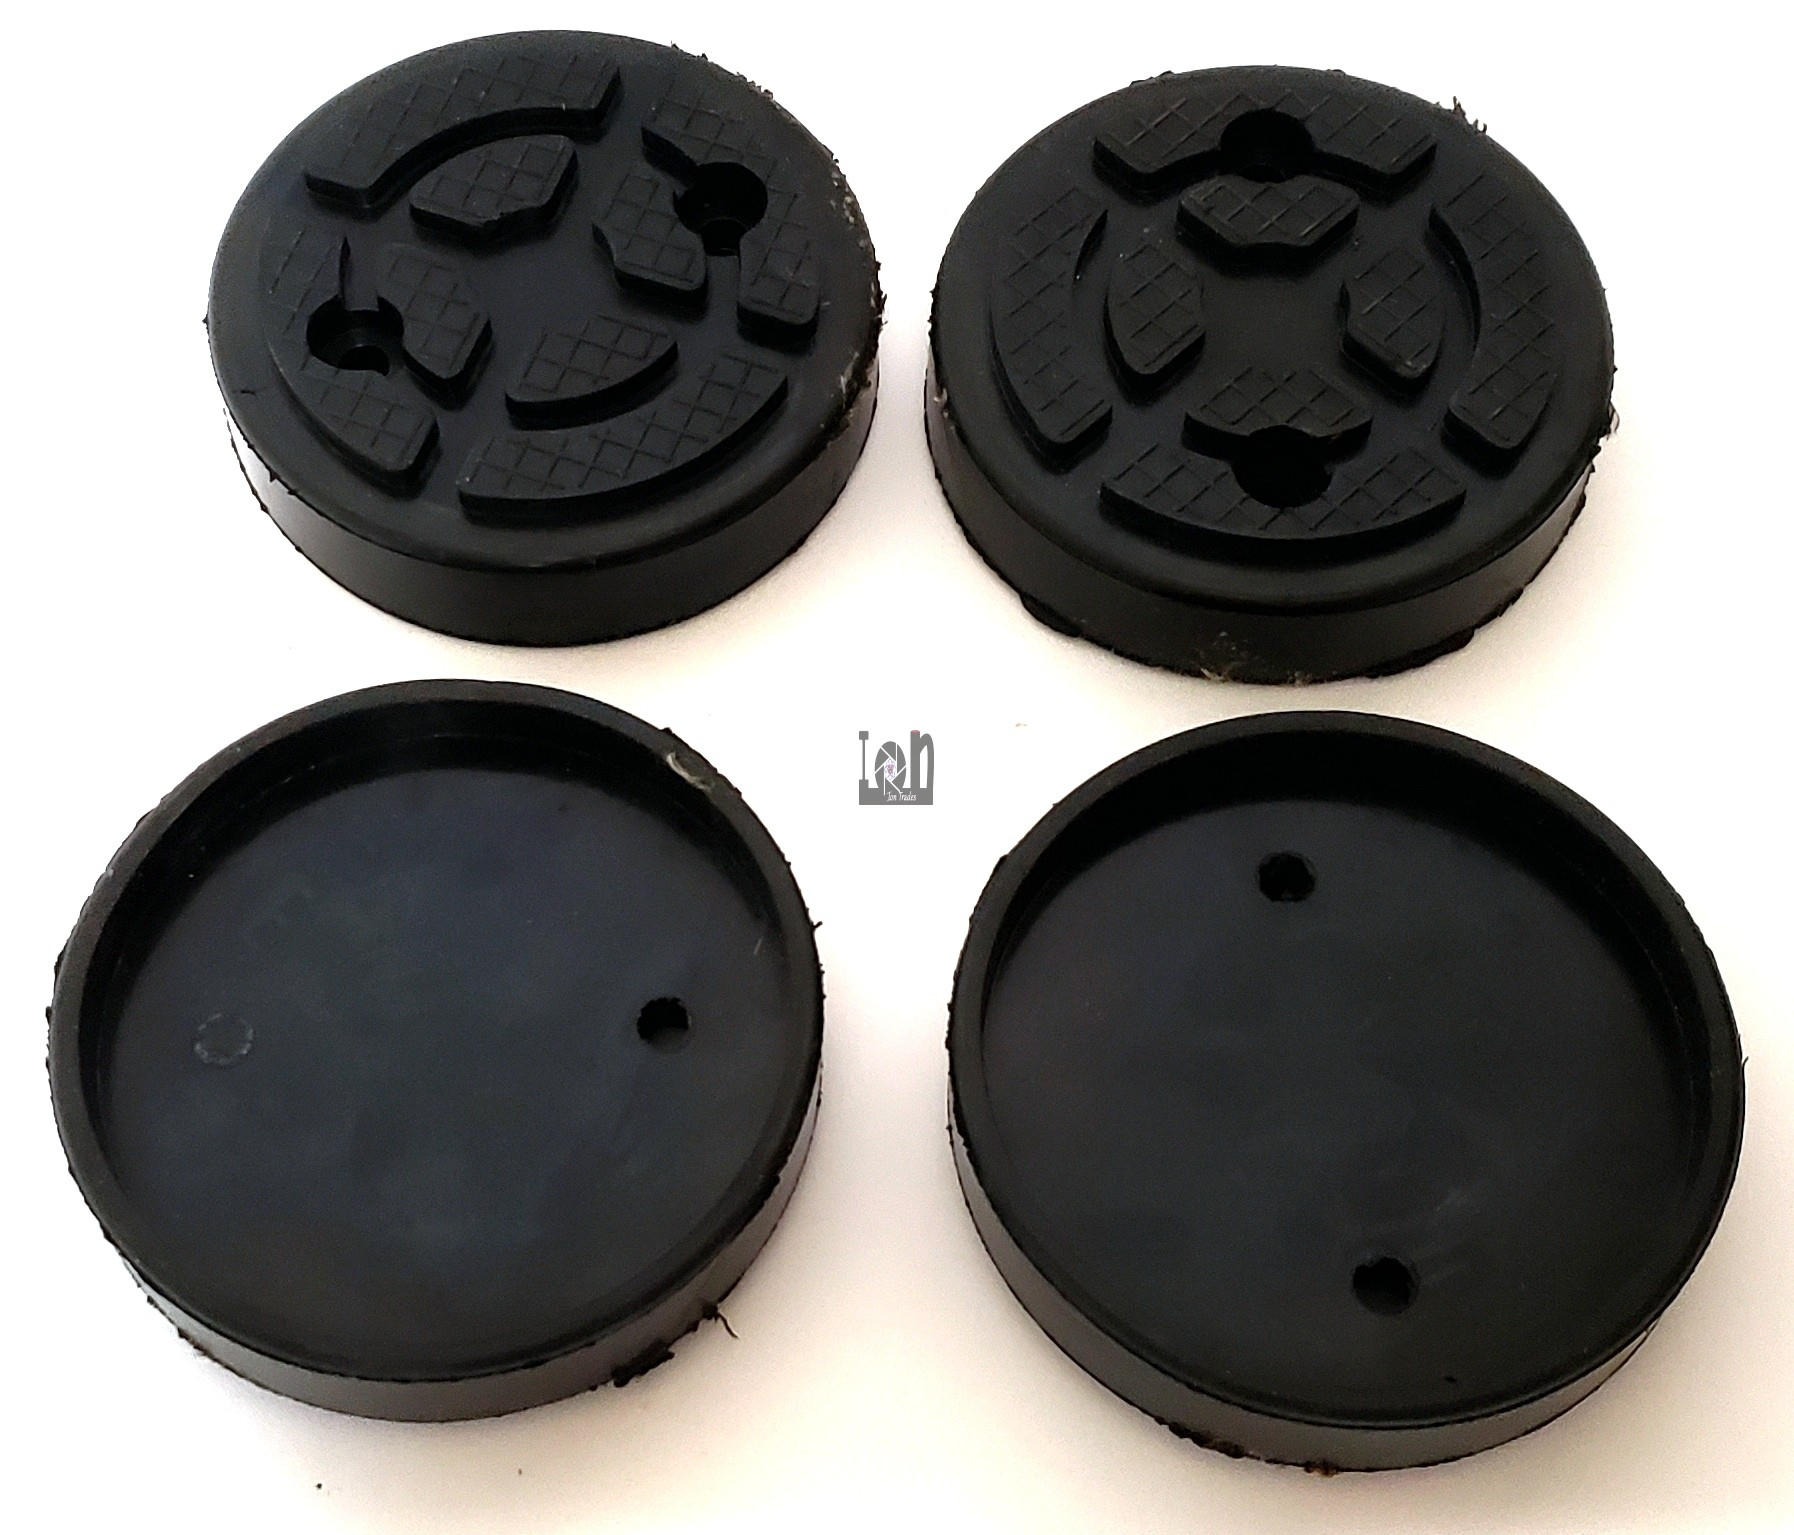 "4pc Lot Large Round Rubber Feet 4.25"" ID x 4.75"" OD Machine Mounted Foot"